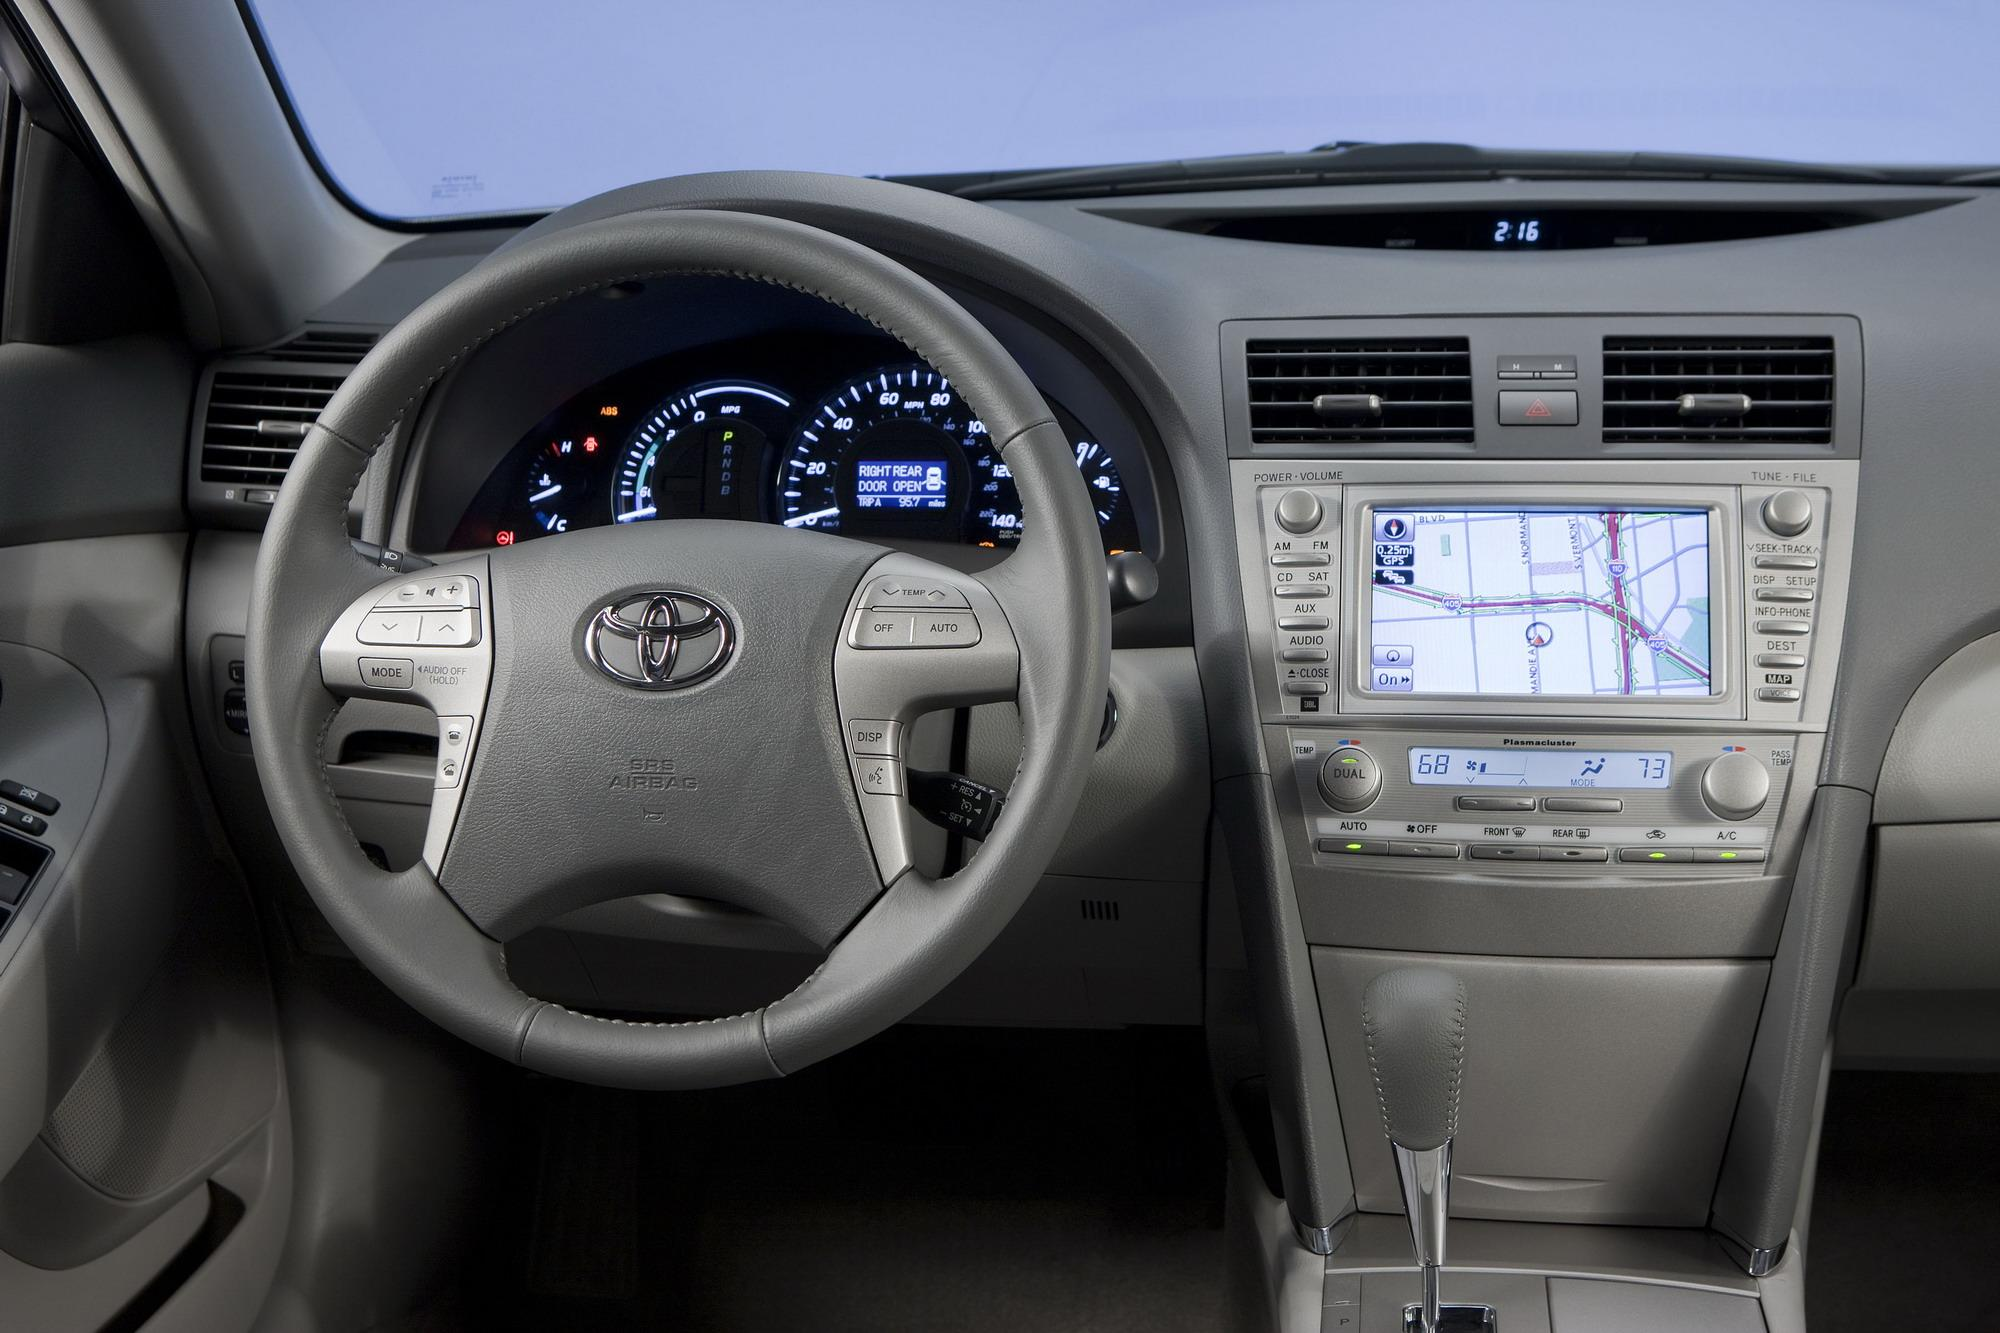 Toyota Camry: Auxiliary boxes